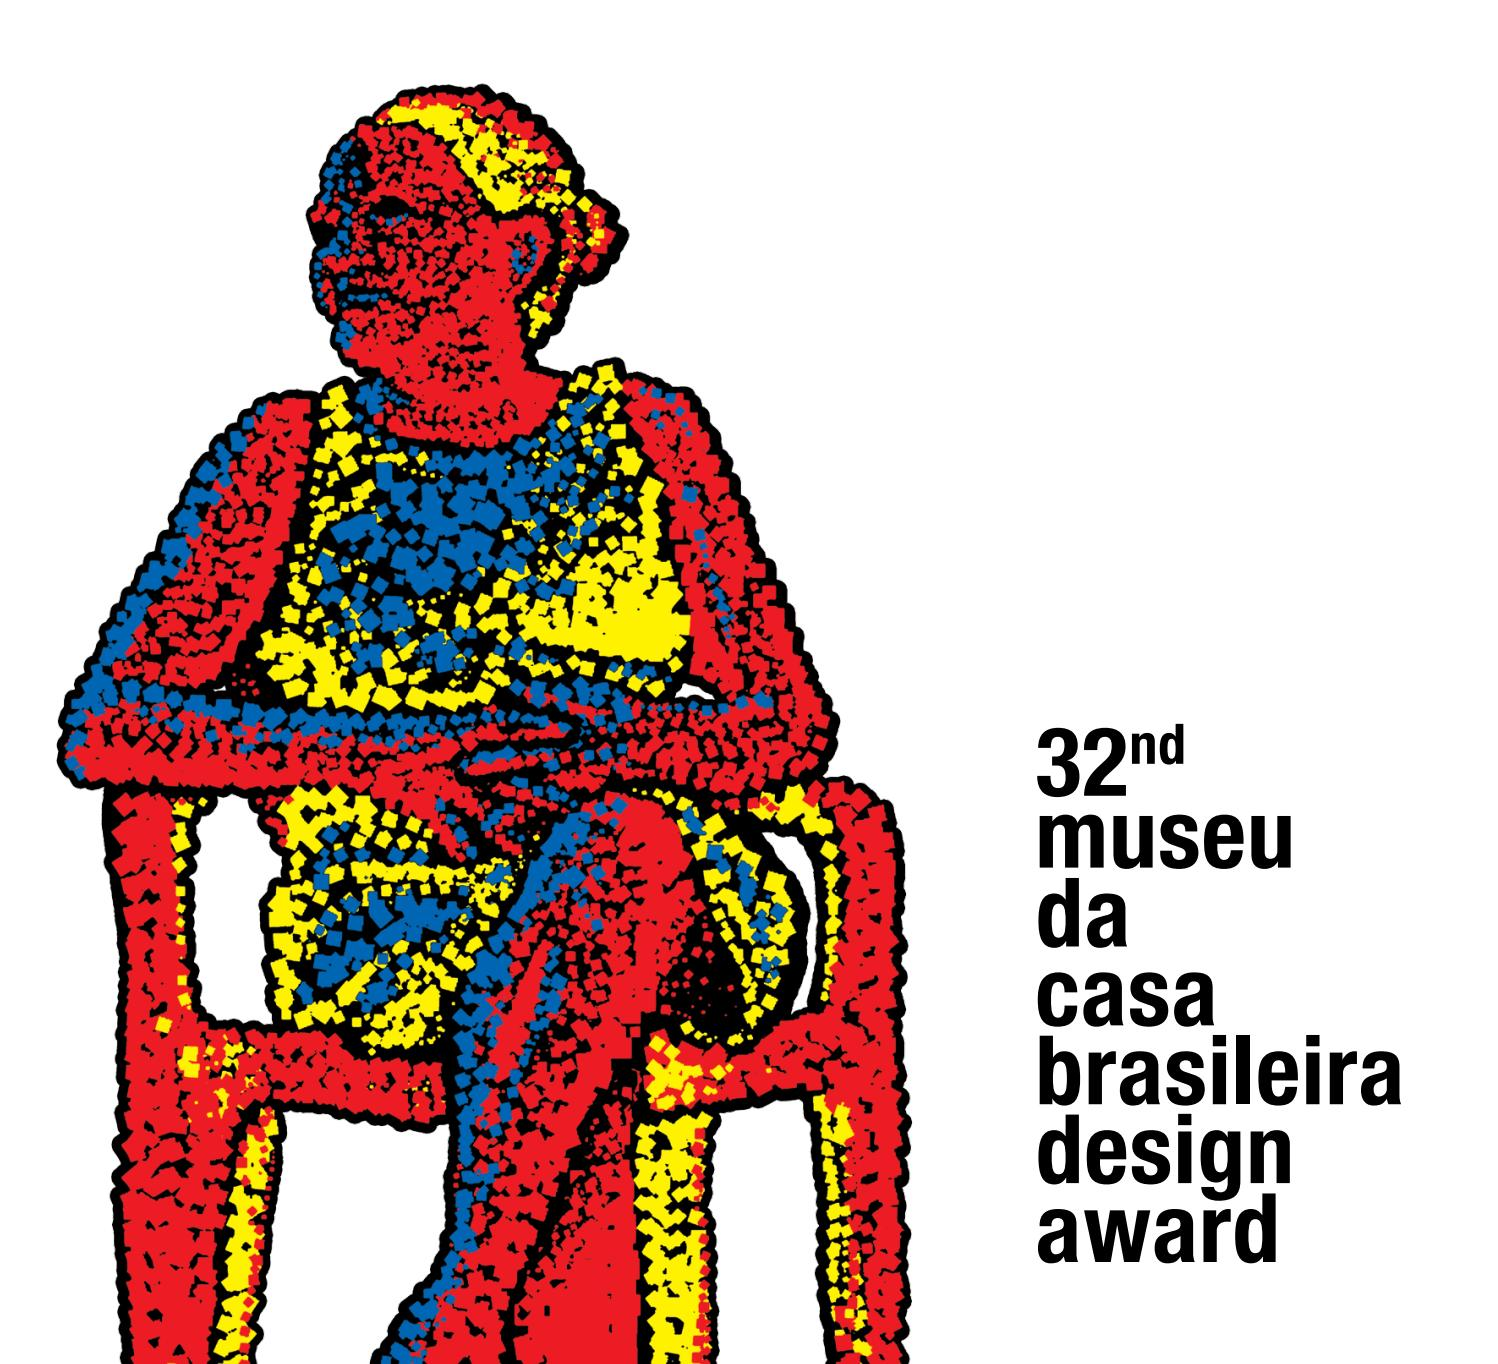 Idea Casa Full Sarno catalog - 32nd museu da casa brasileira design award by